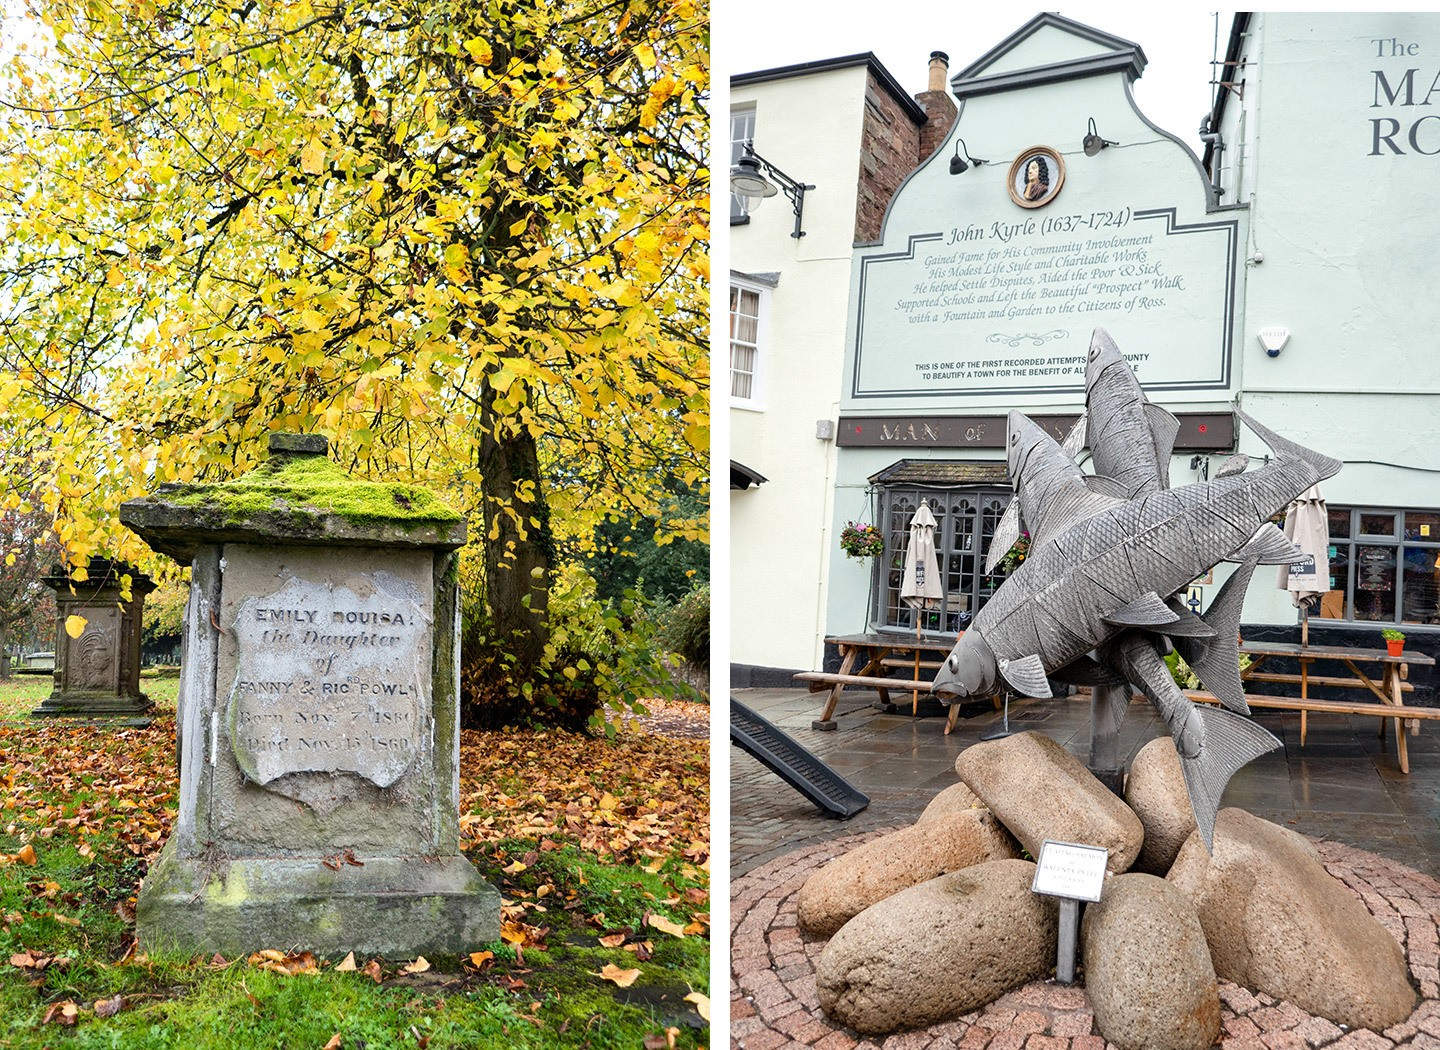 Graveyard and John Kyrle pub in Ross-on-Wye